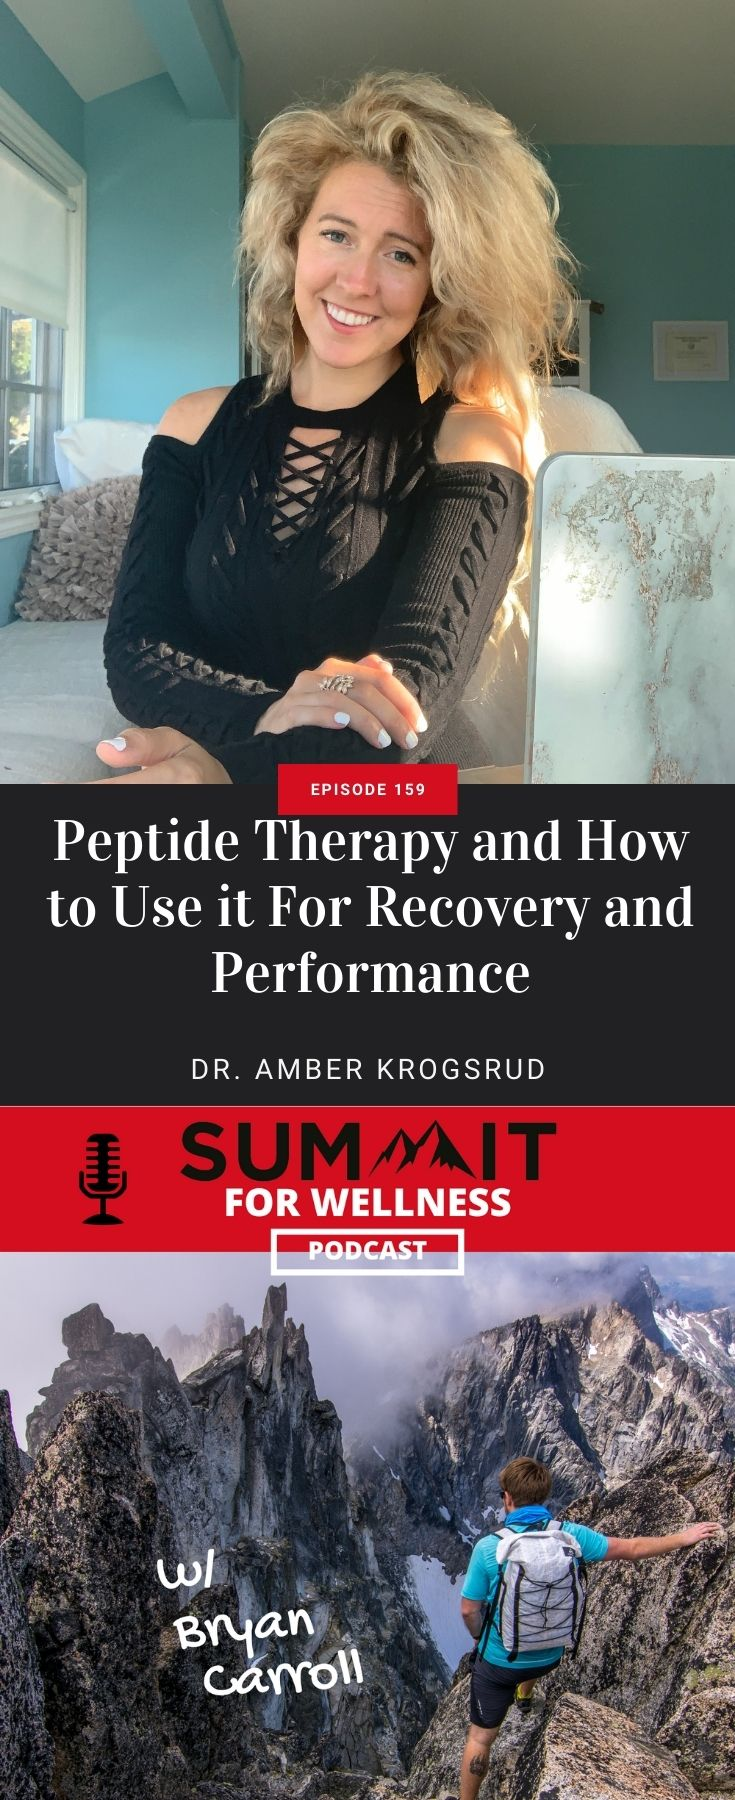 Learn from Dr. Amber Krogsrud how to use Peptide Therapy